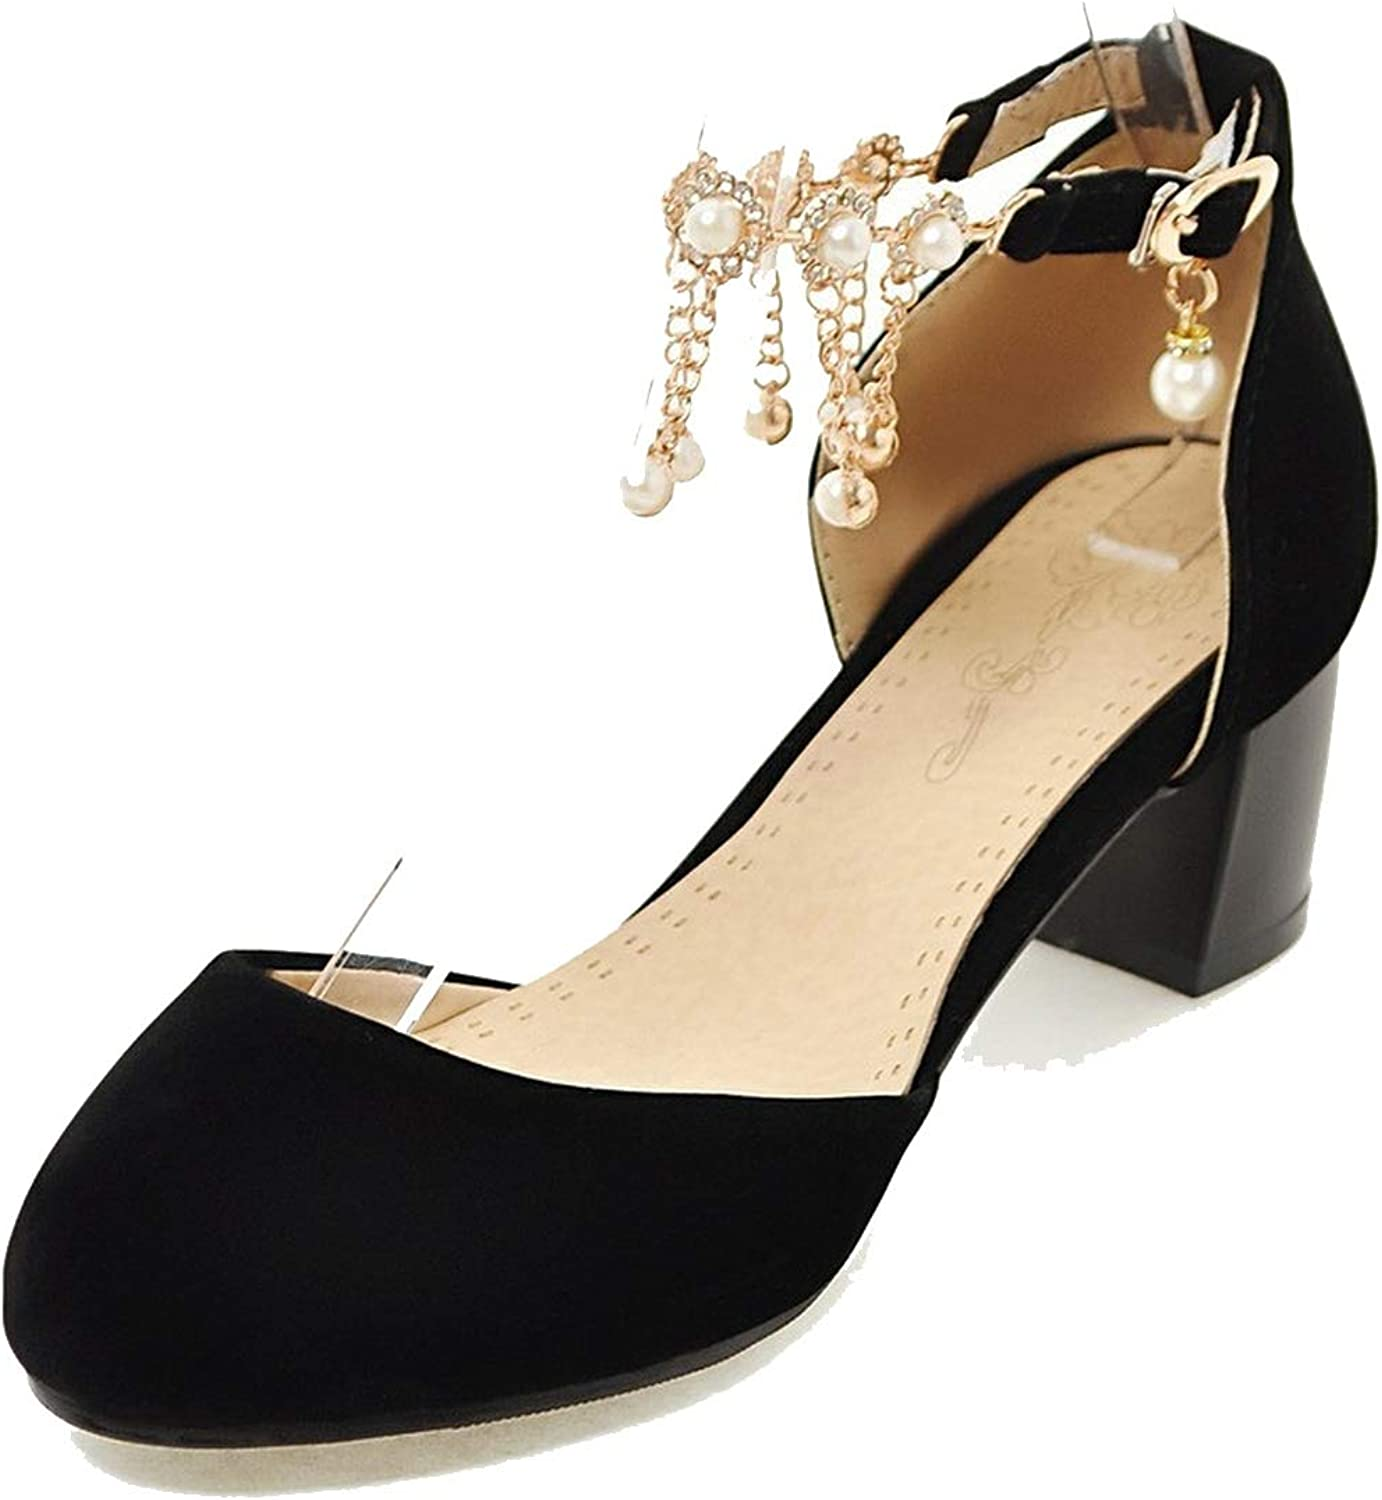 Pumps Women shoes Sweet Bead Round Toe Party shoes Comfortable Square Heels shoes Woman,Black,10